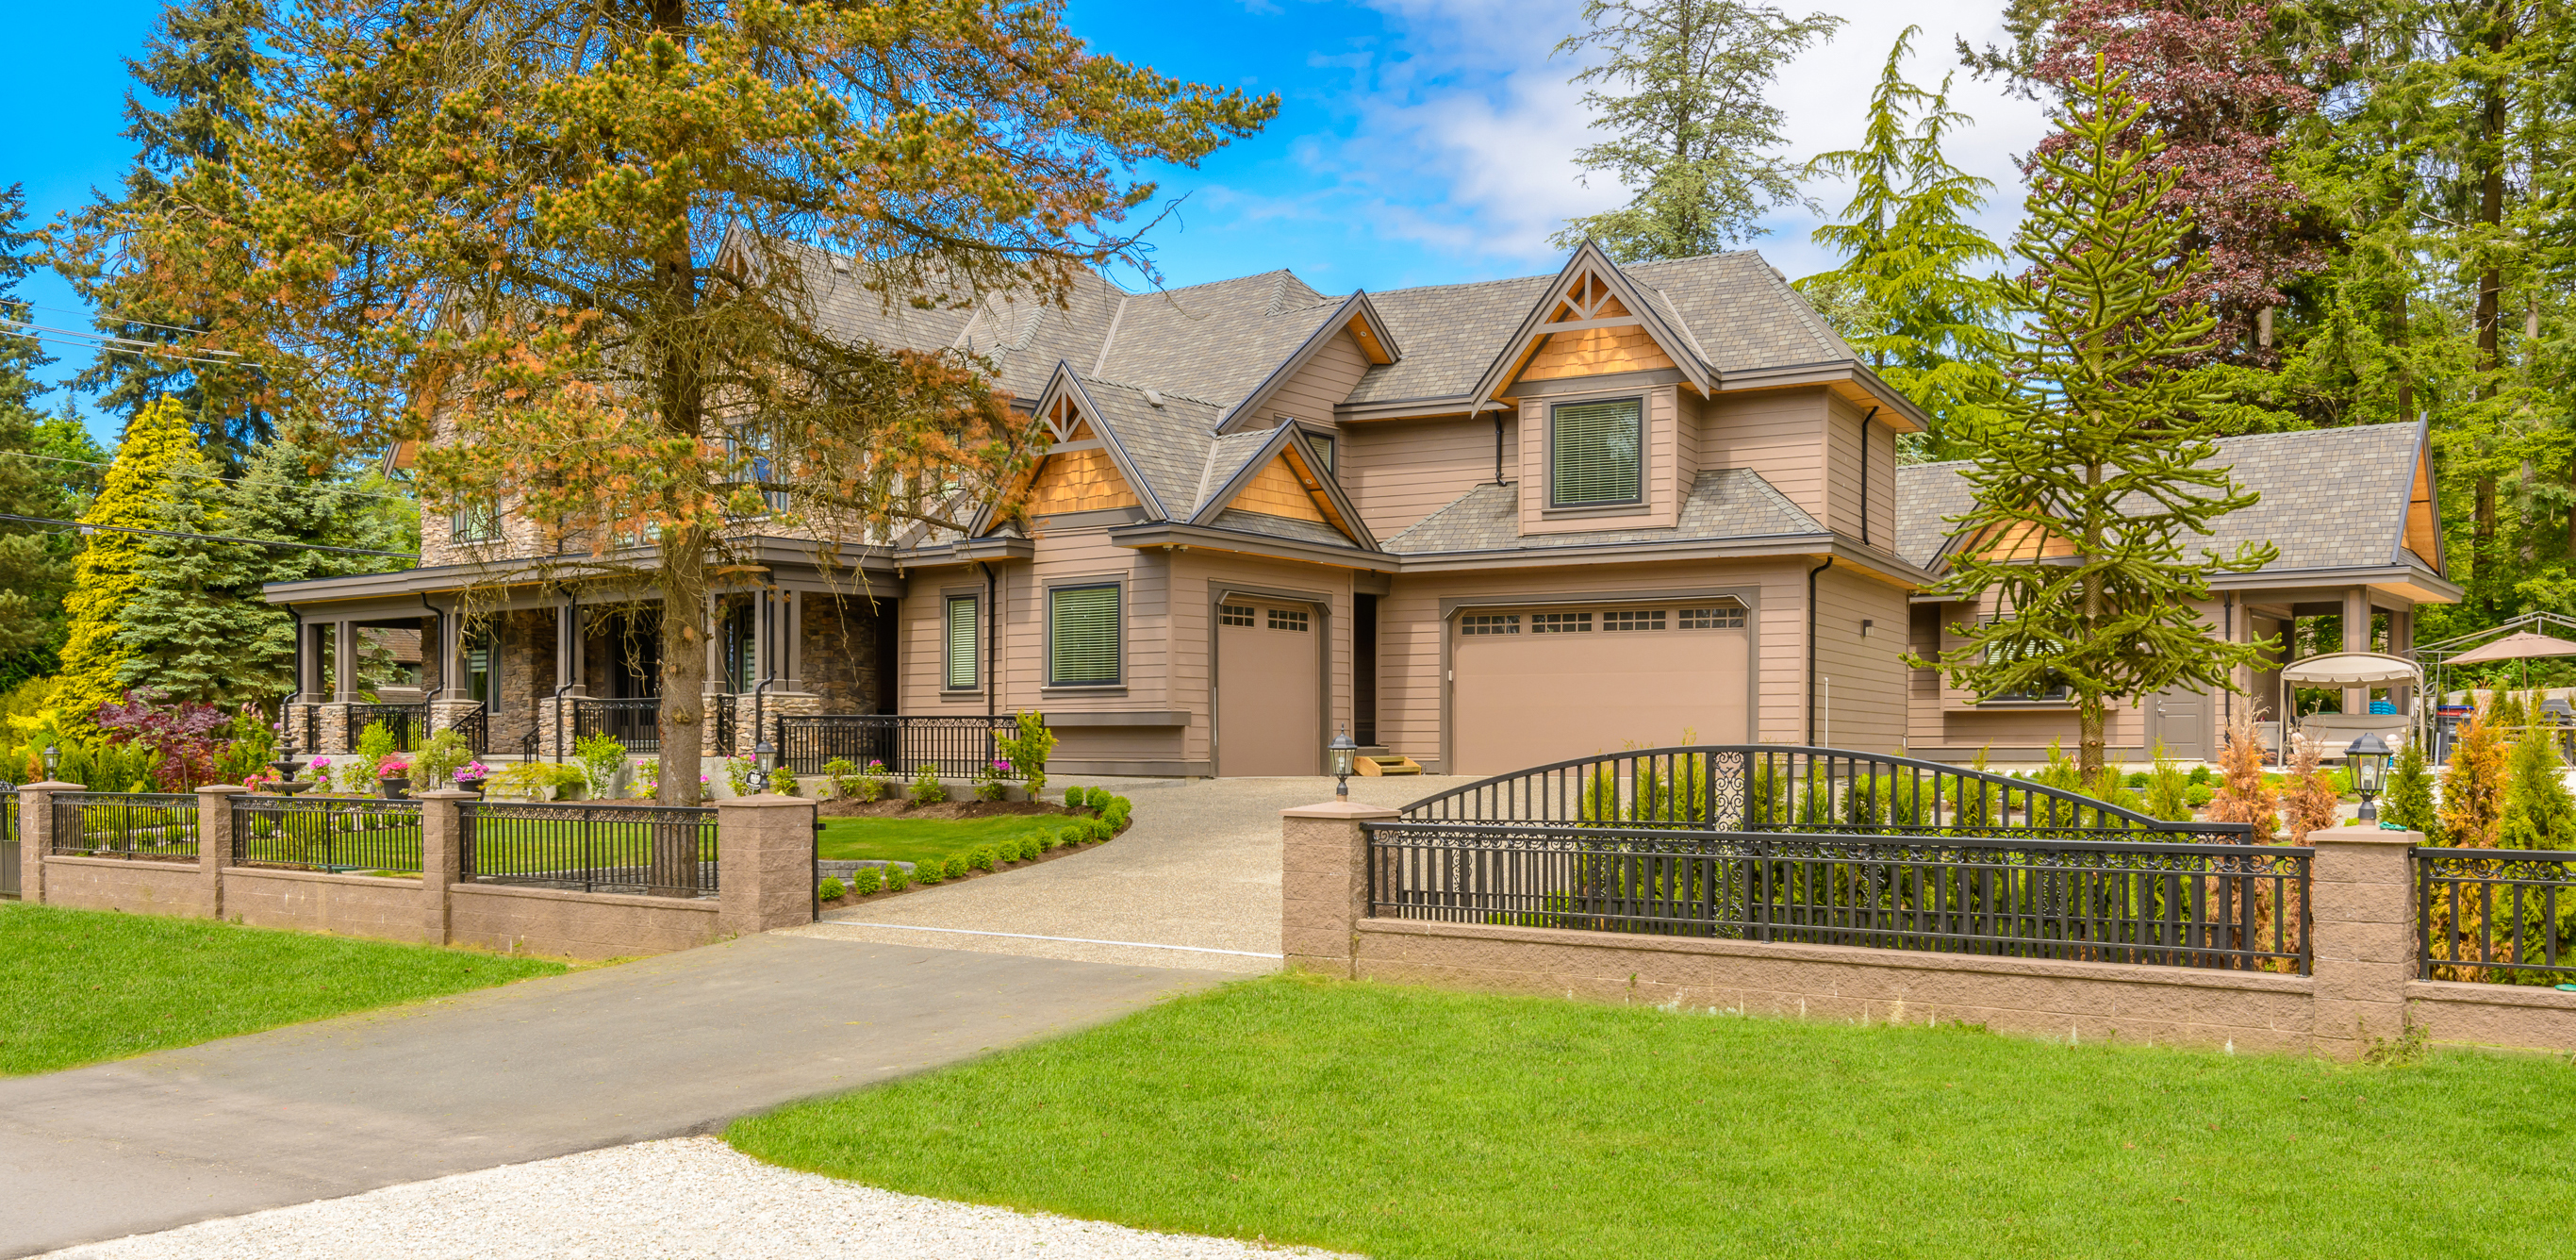 Coeur d\'Alene and North Idaho area Real Estate For Sale